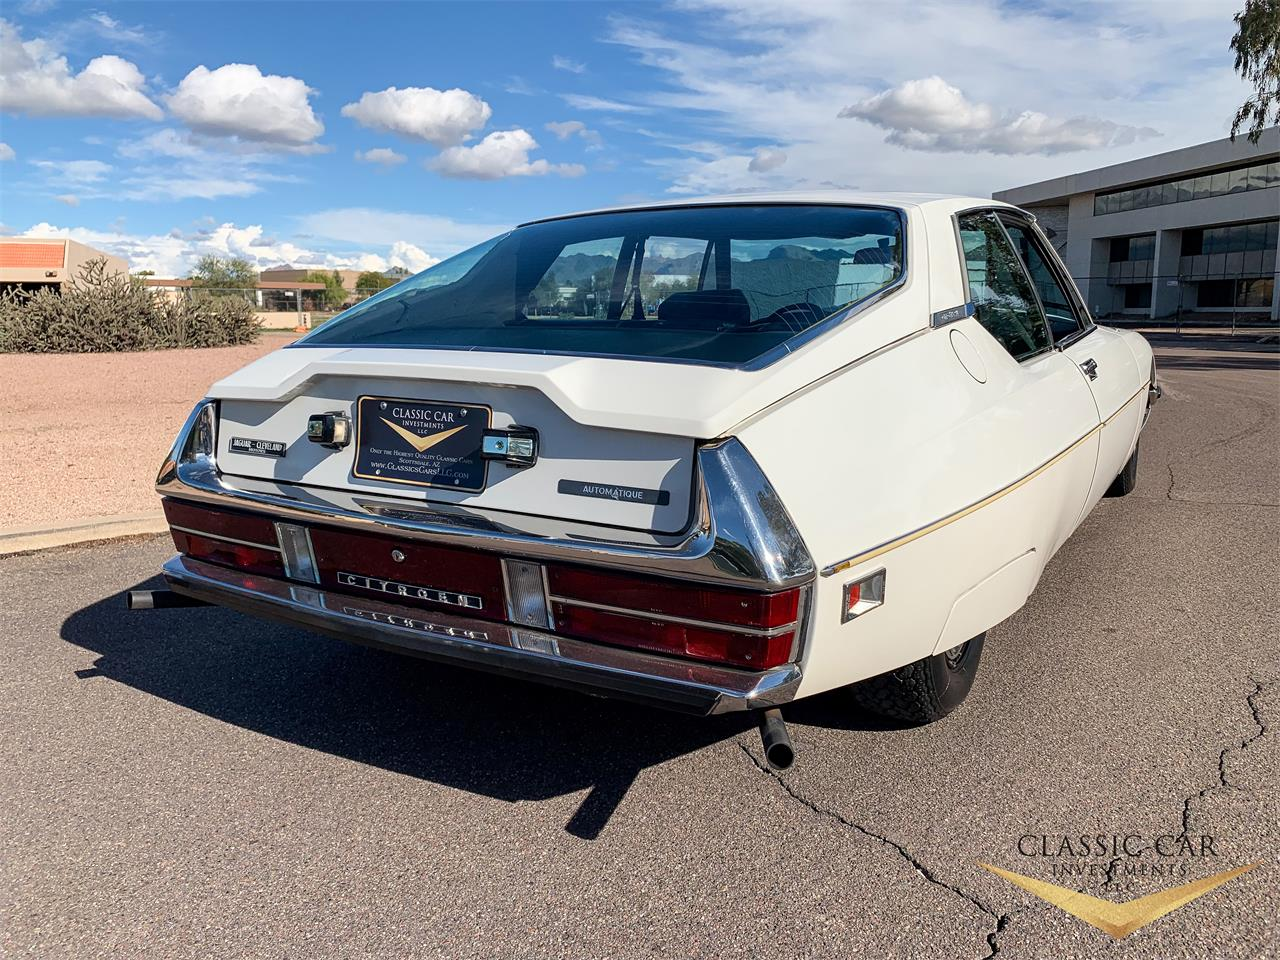 Large Picture of '72 Citroen SM located in Scottsdale Arizona - $53,500.00 Offered by Classic Car Investments LLC - P667